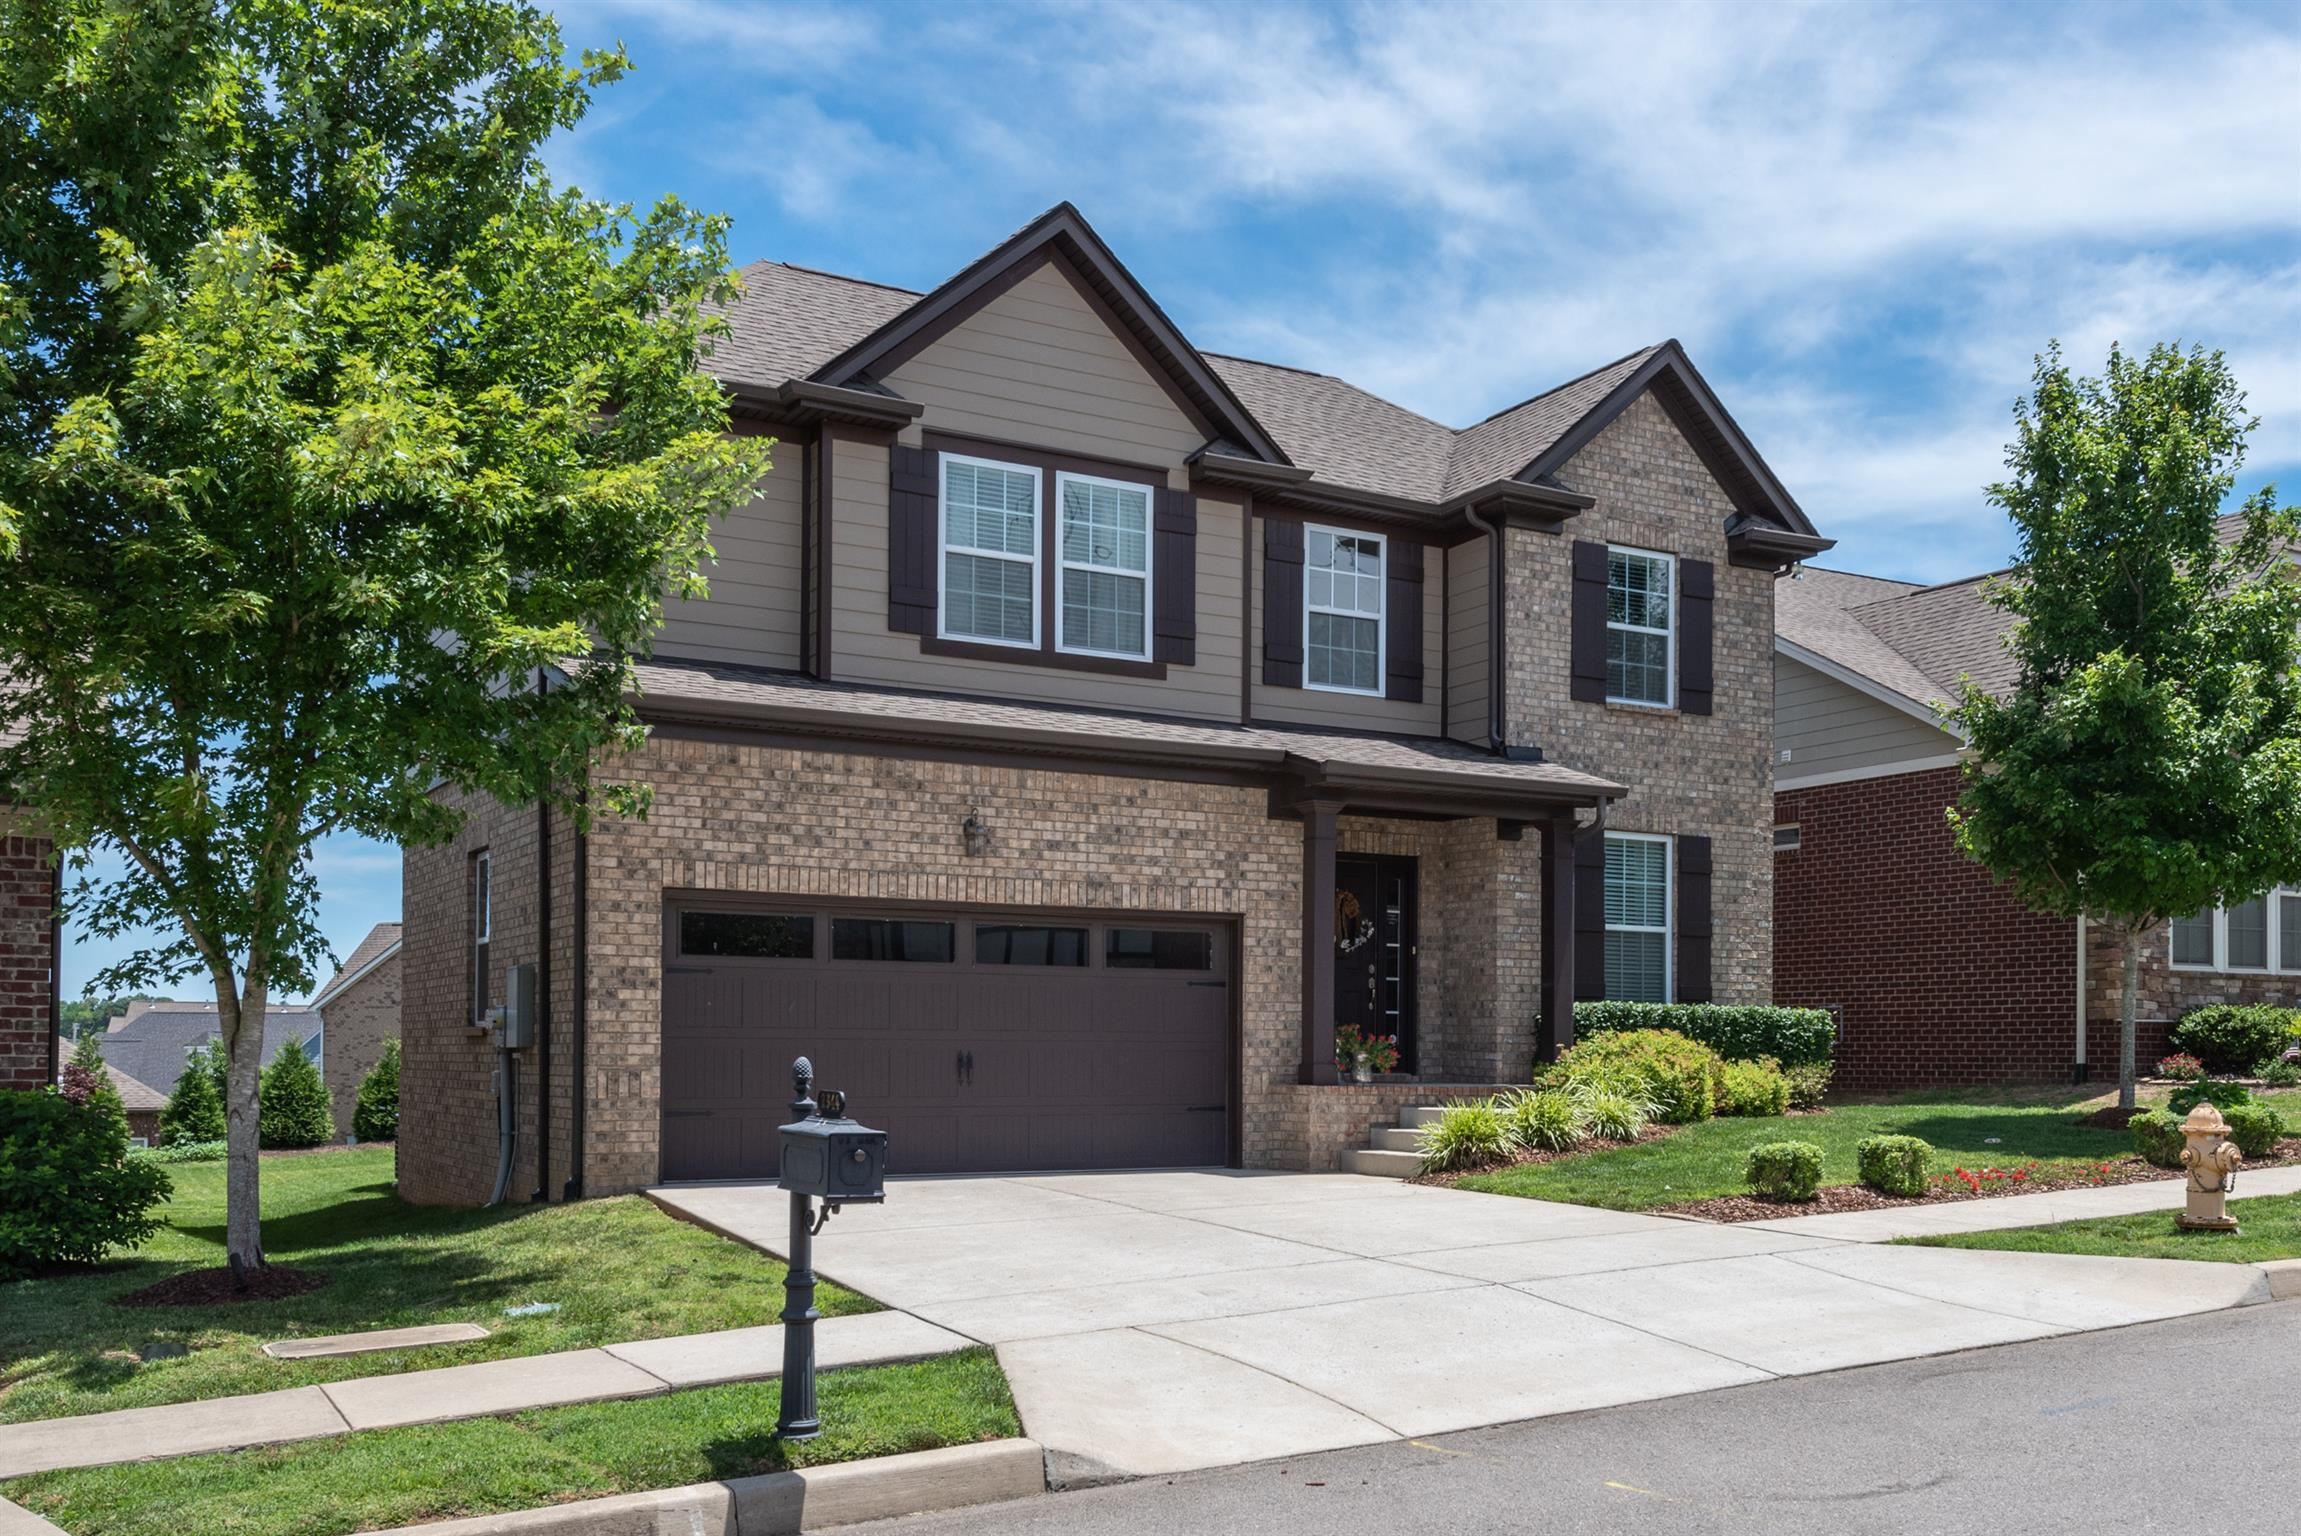 2344 Redwood Trl, Thompsons Station, TN 37179 - Thompsons Station, TN real estate listing